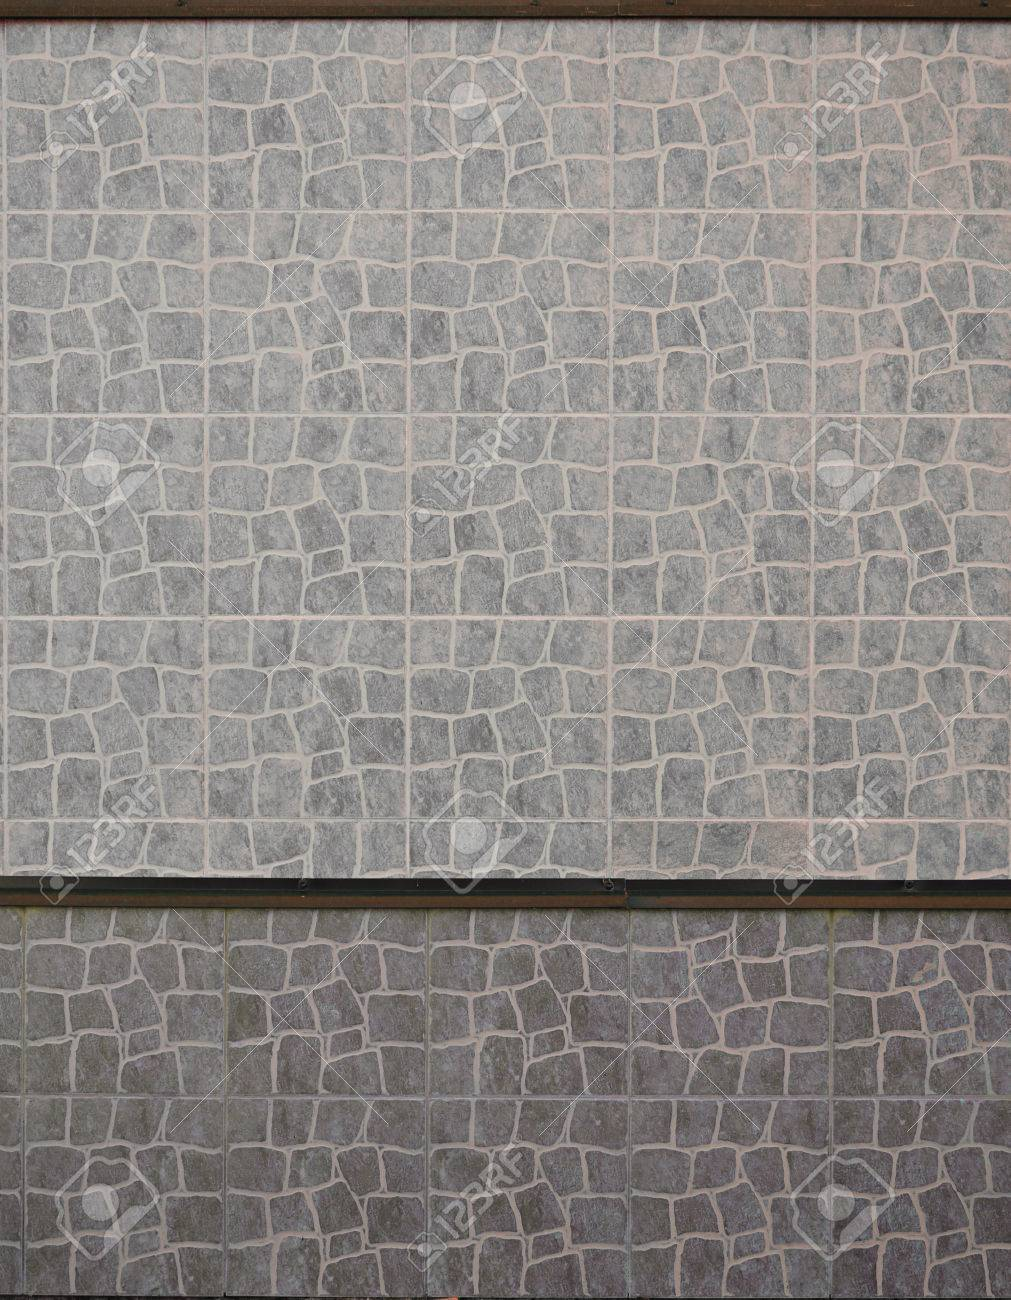 Russian ceramic wall tiles texture modern exterior marble floors russian ceramic wall tiles texture modern exterior marble floors stock photo 69116600 doublecrazyfo Image collections